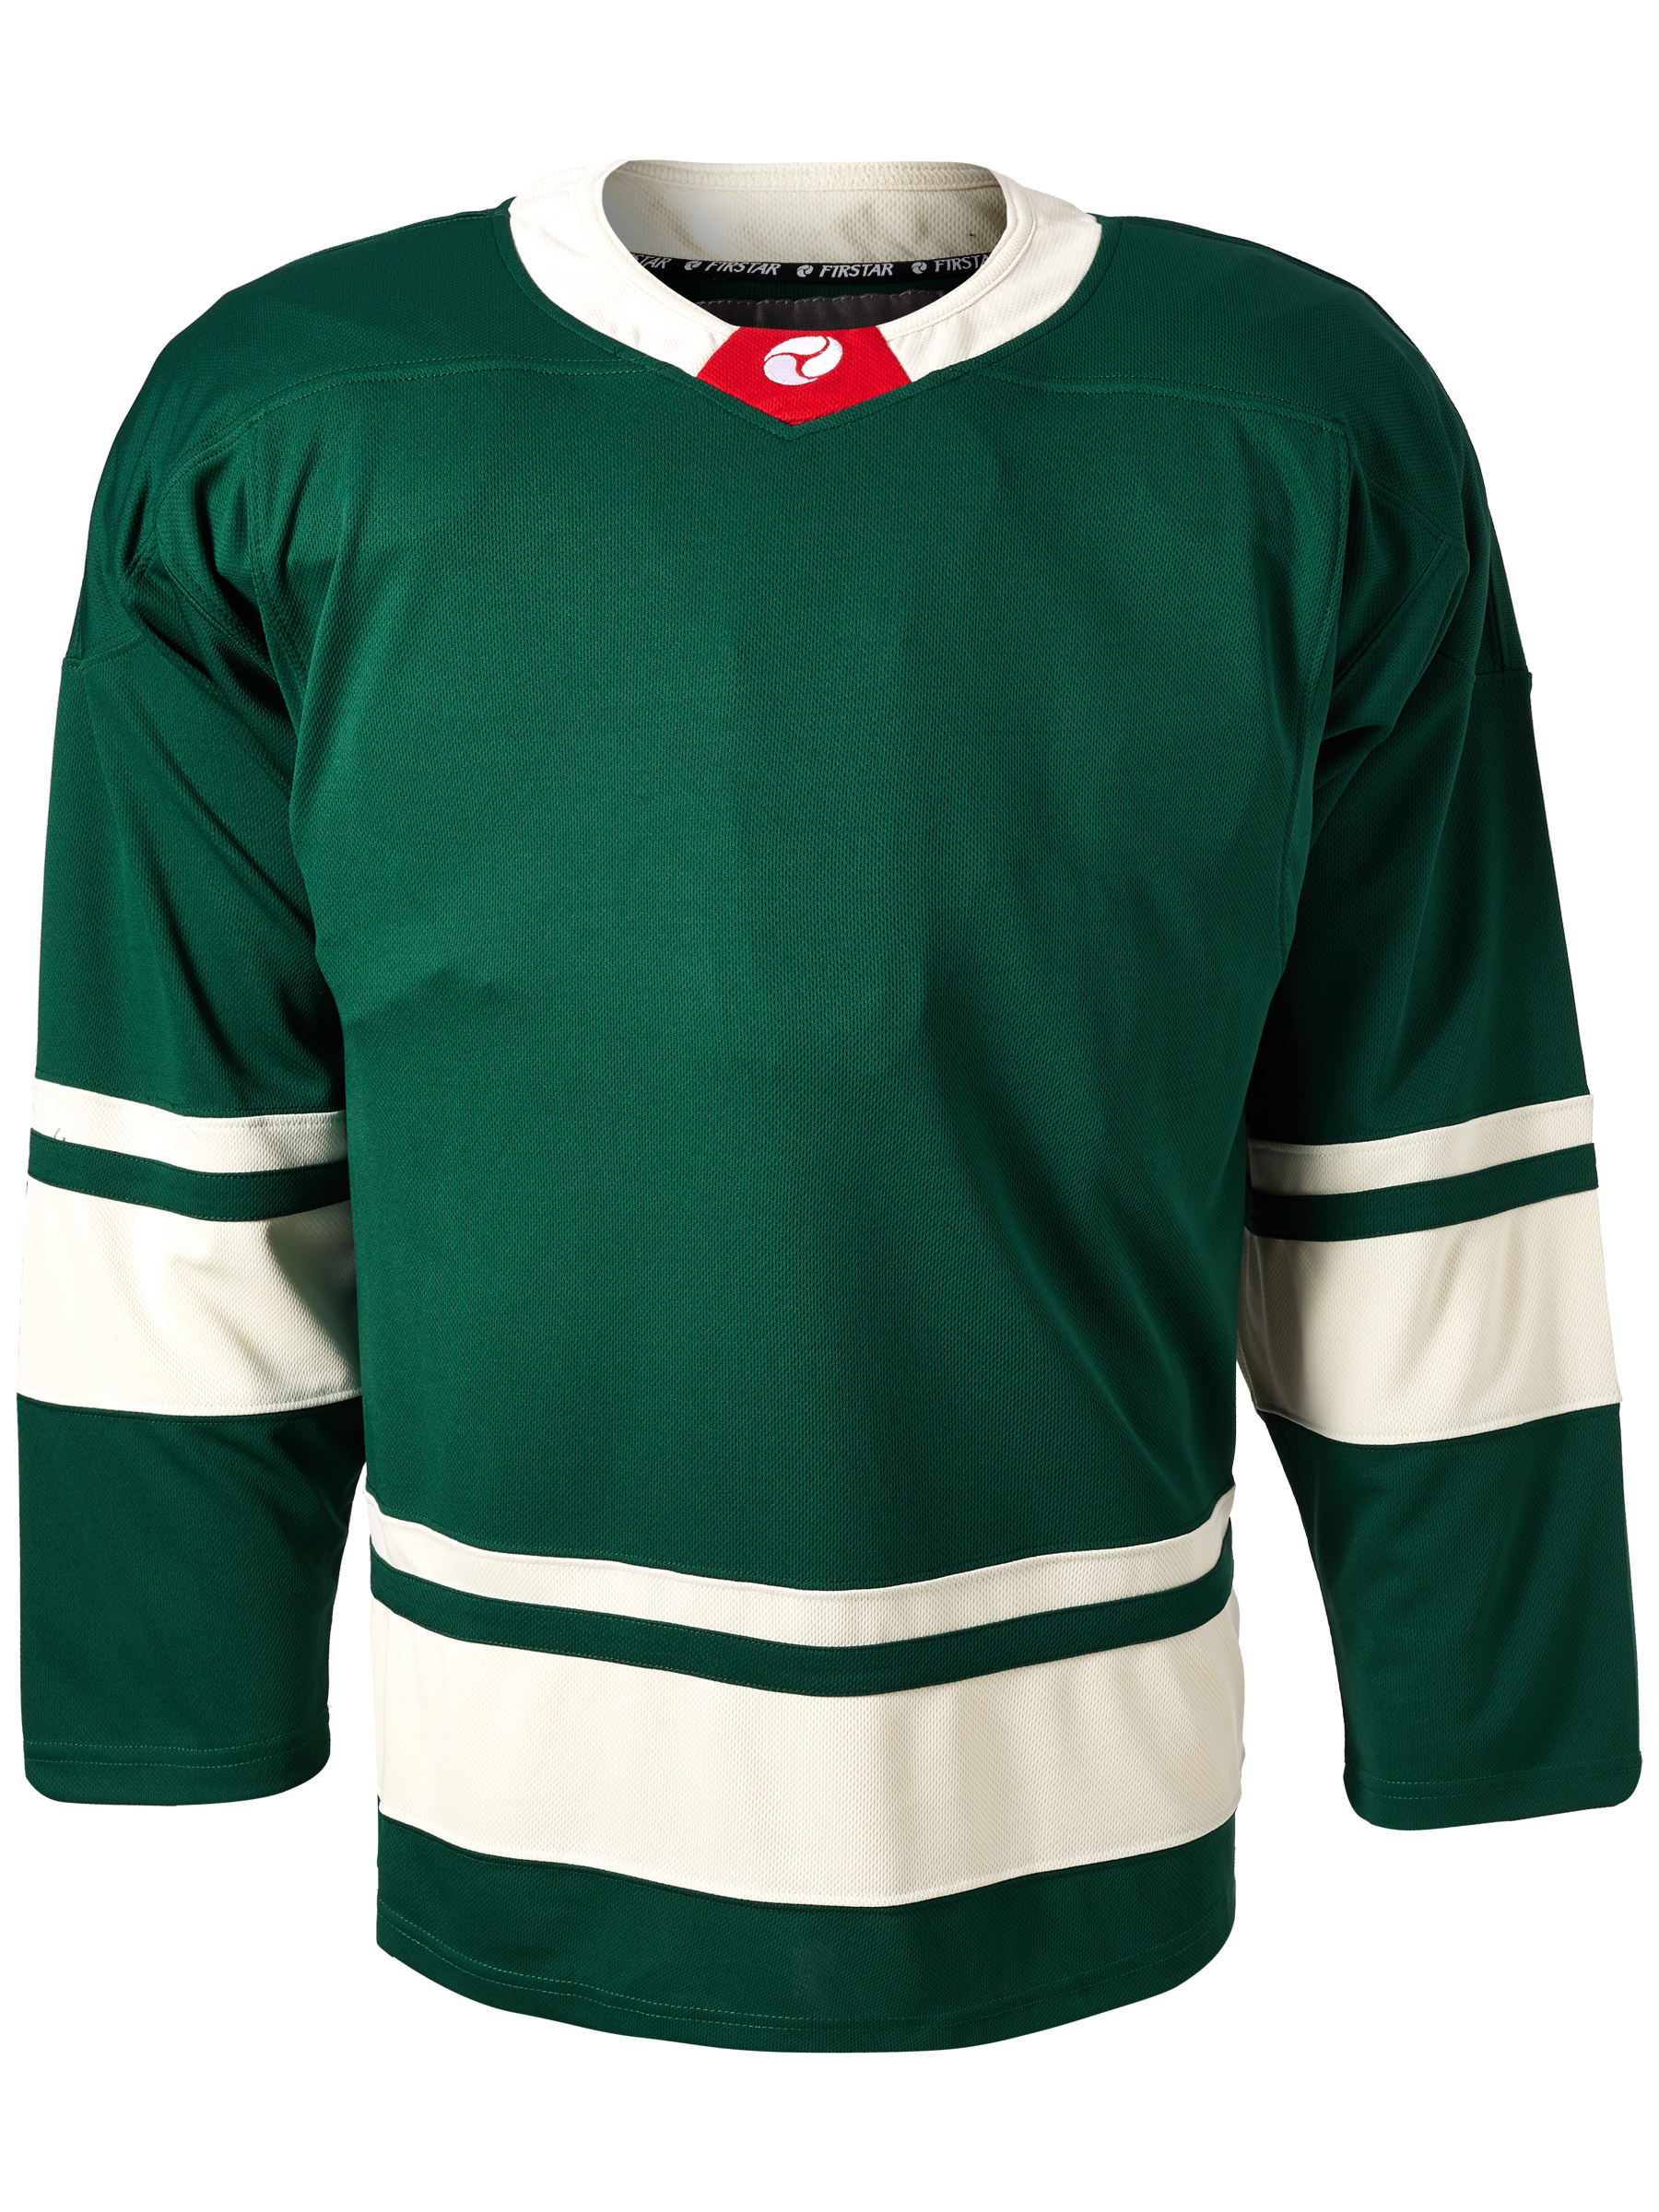 Firstar-Gamewear-Jersey-Minnesota-Green.jpeg